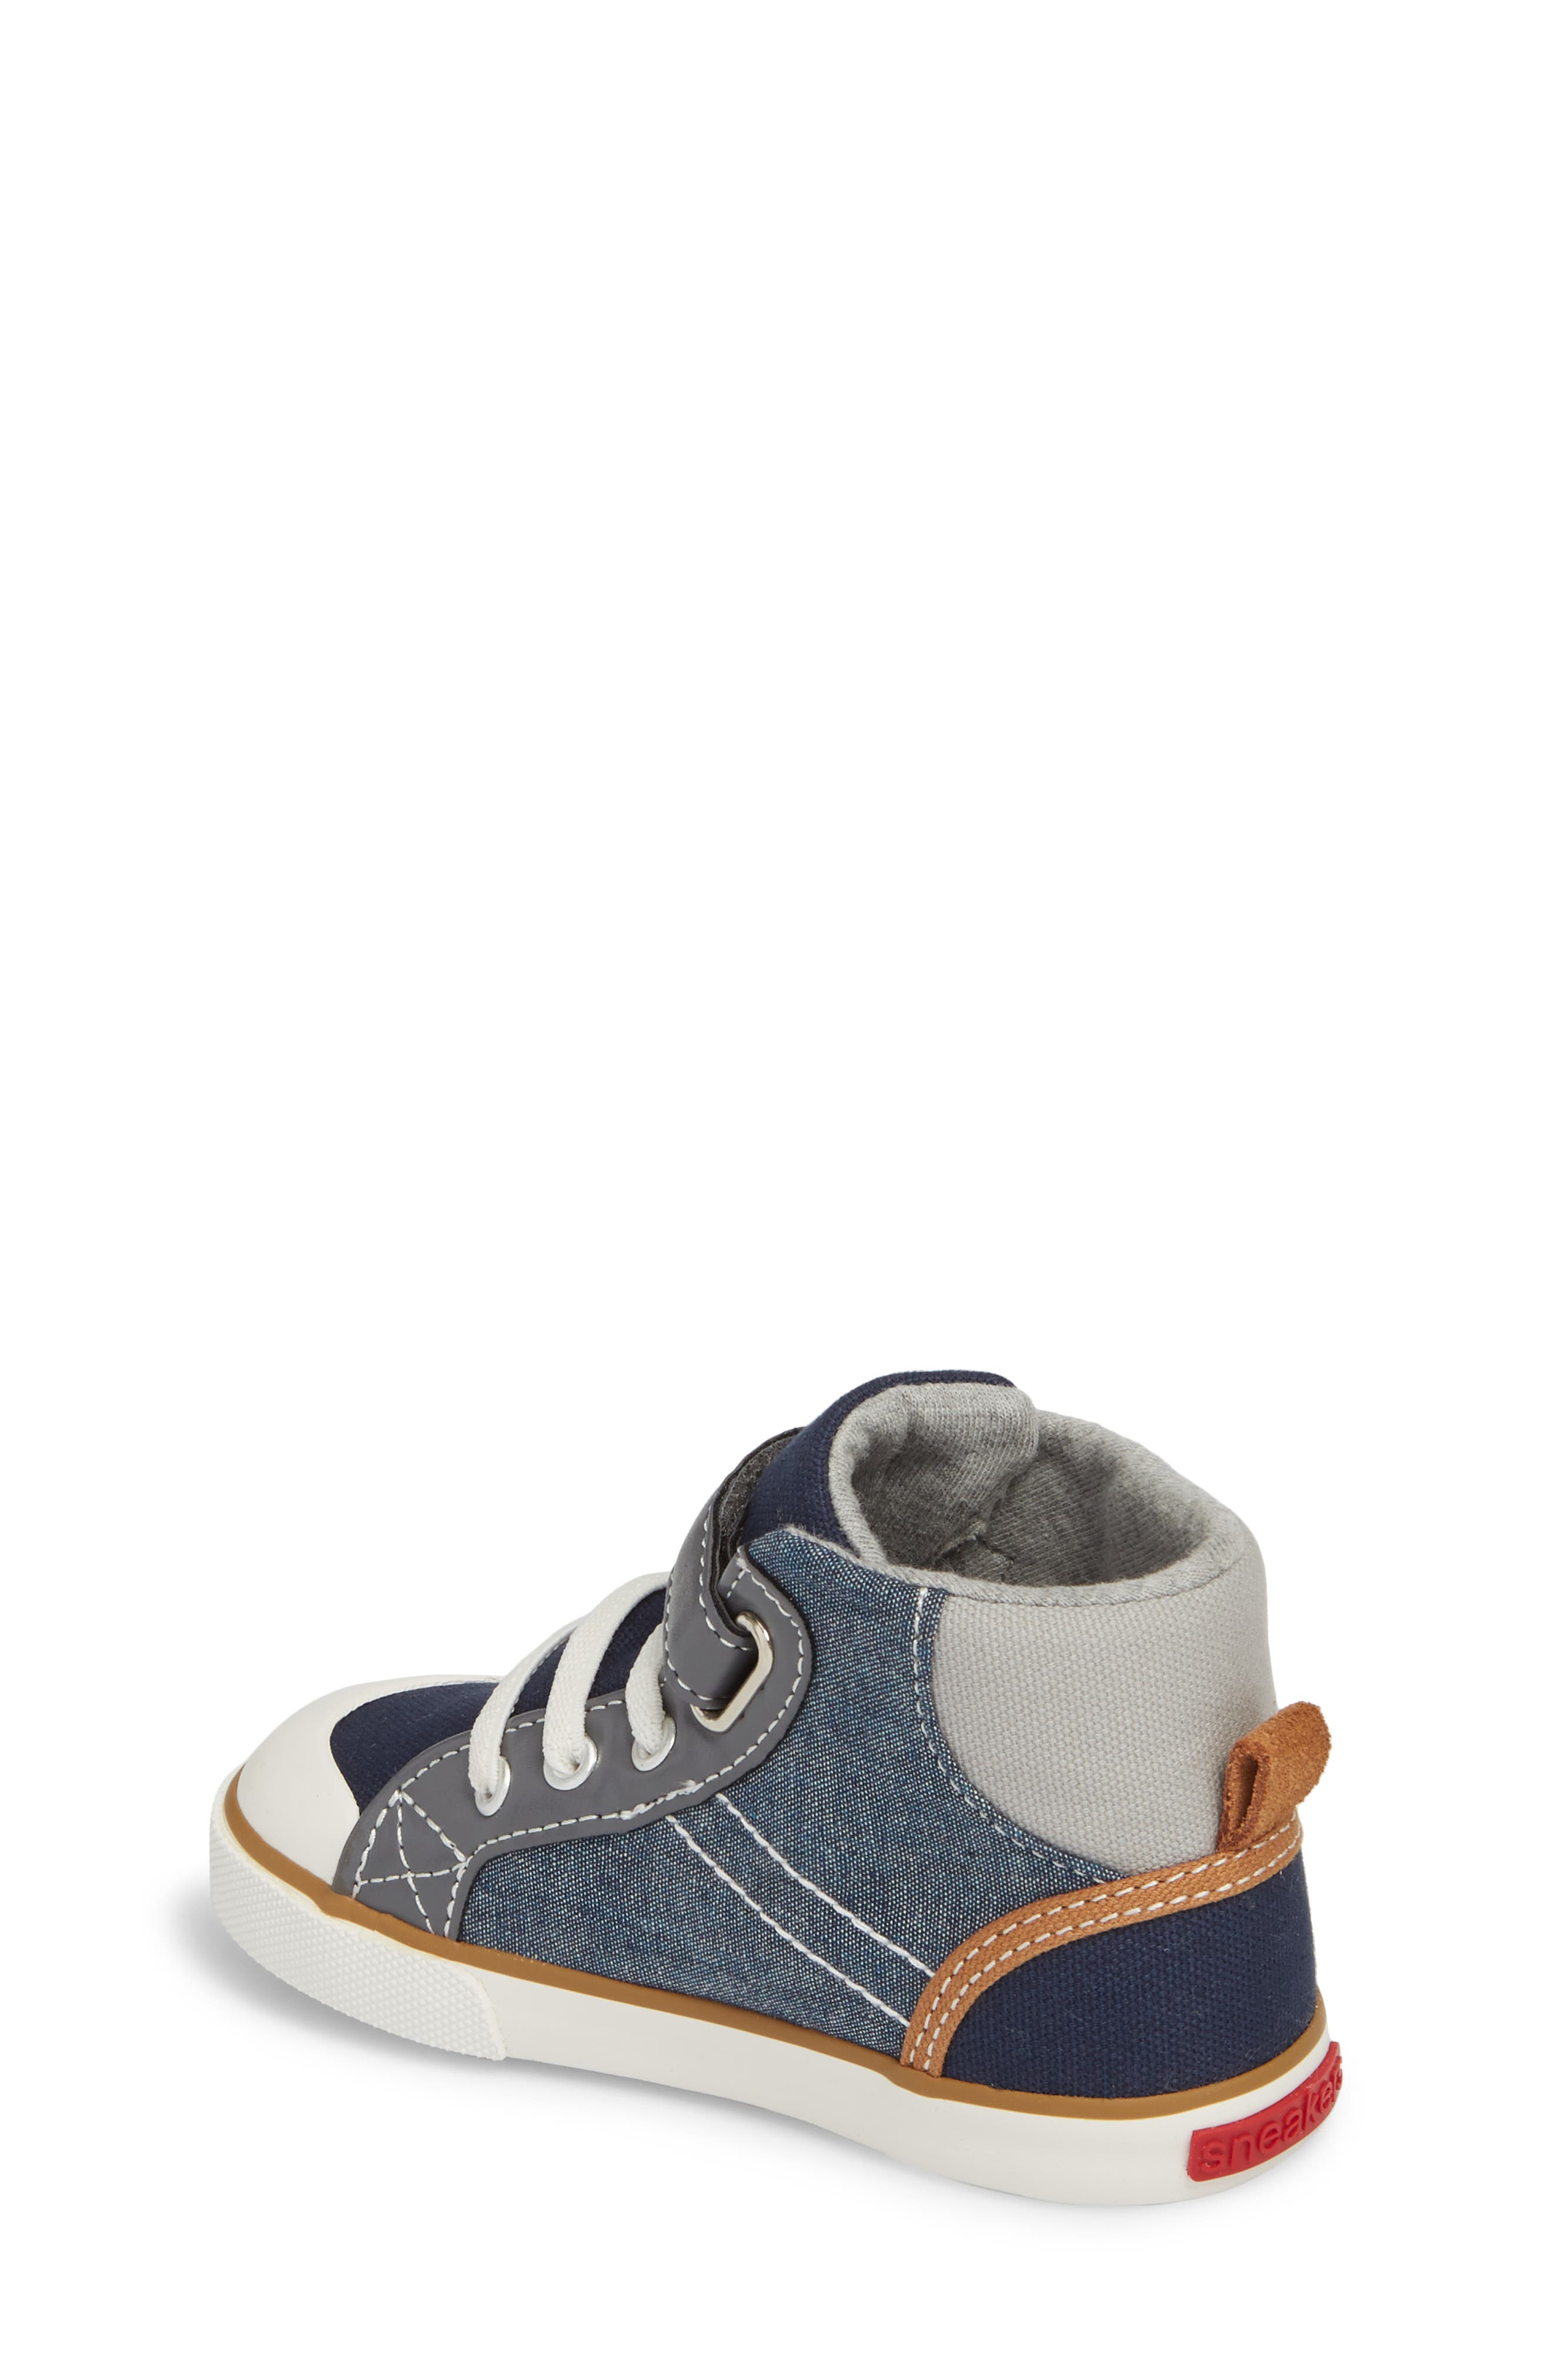 Dane Sneaker,                             Alternate thumbnail 2, color,                             CHAMBRAY MULTI